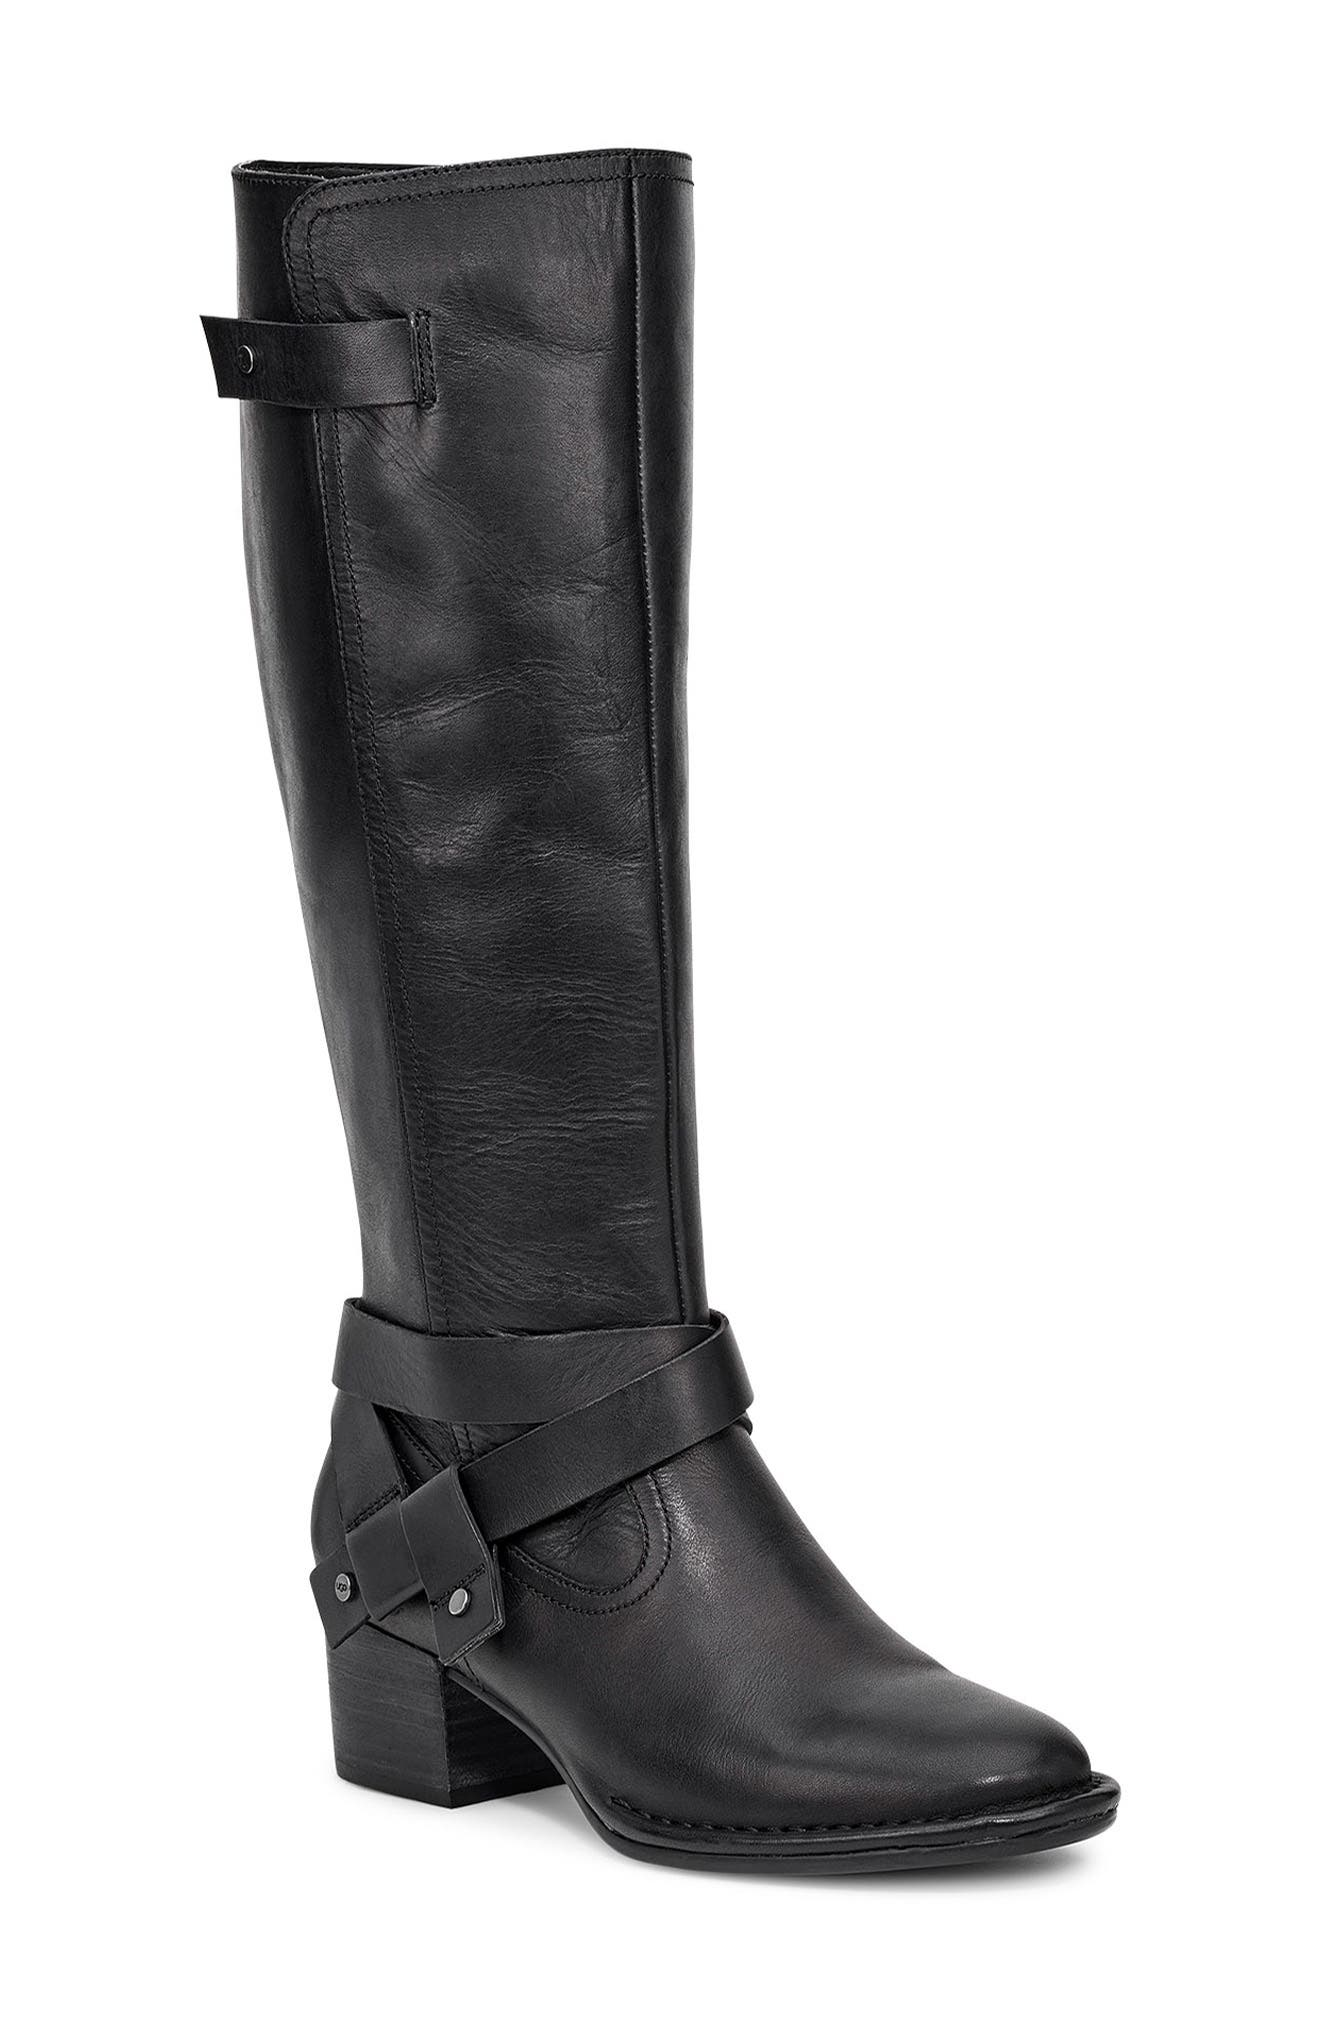 Image of UGG Bandara Knee High Boot